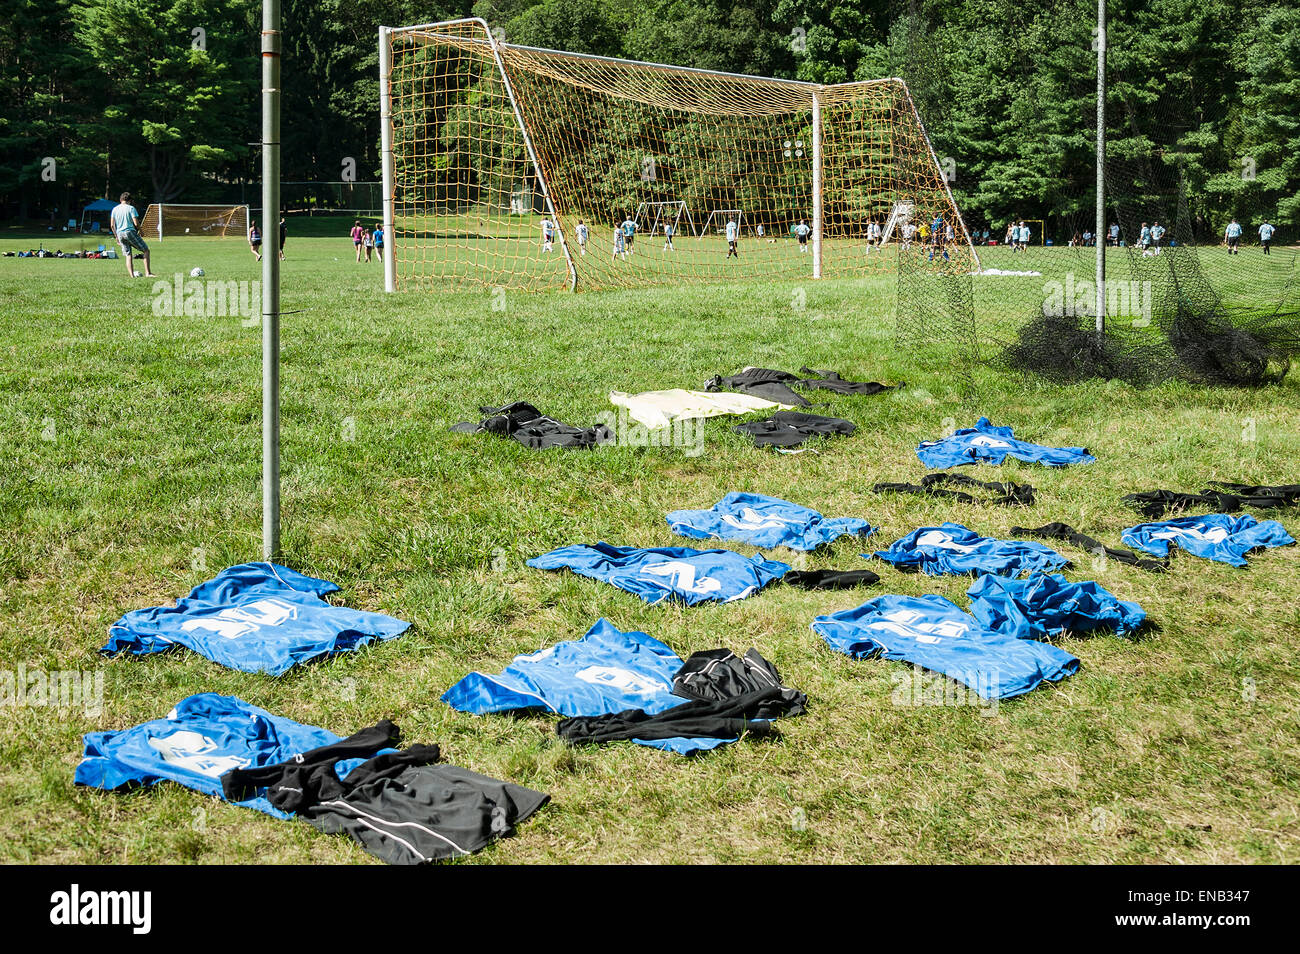 Soccer jerseys lay out to dry between games at a soccer tournament. - Stock Image